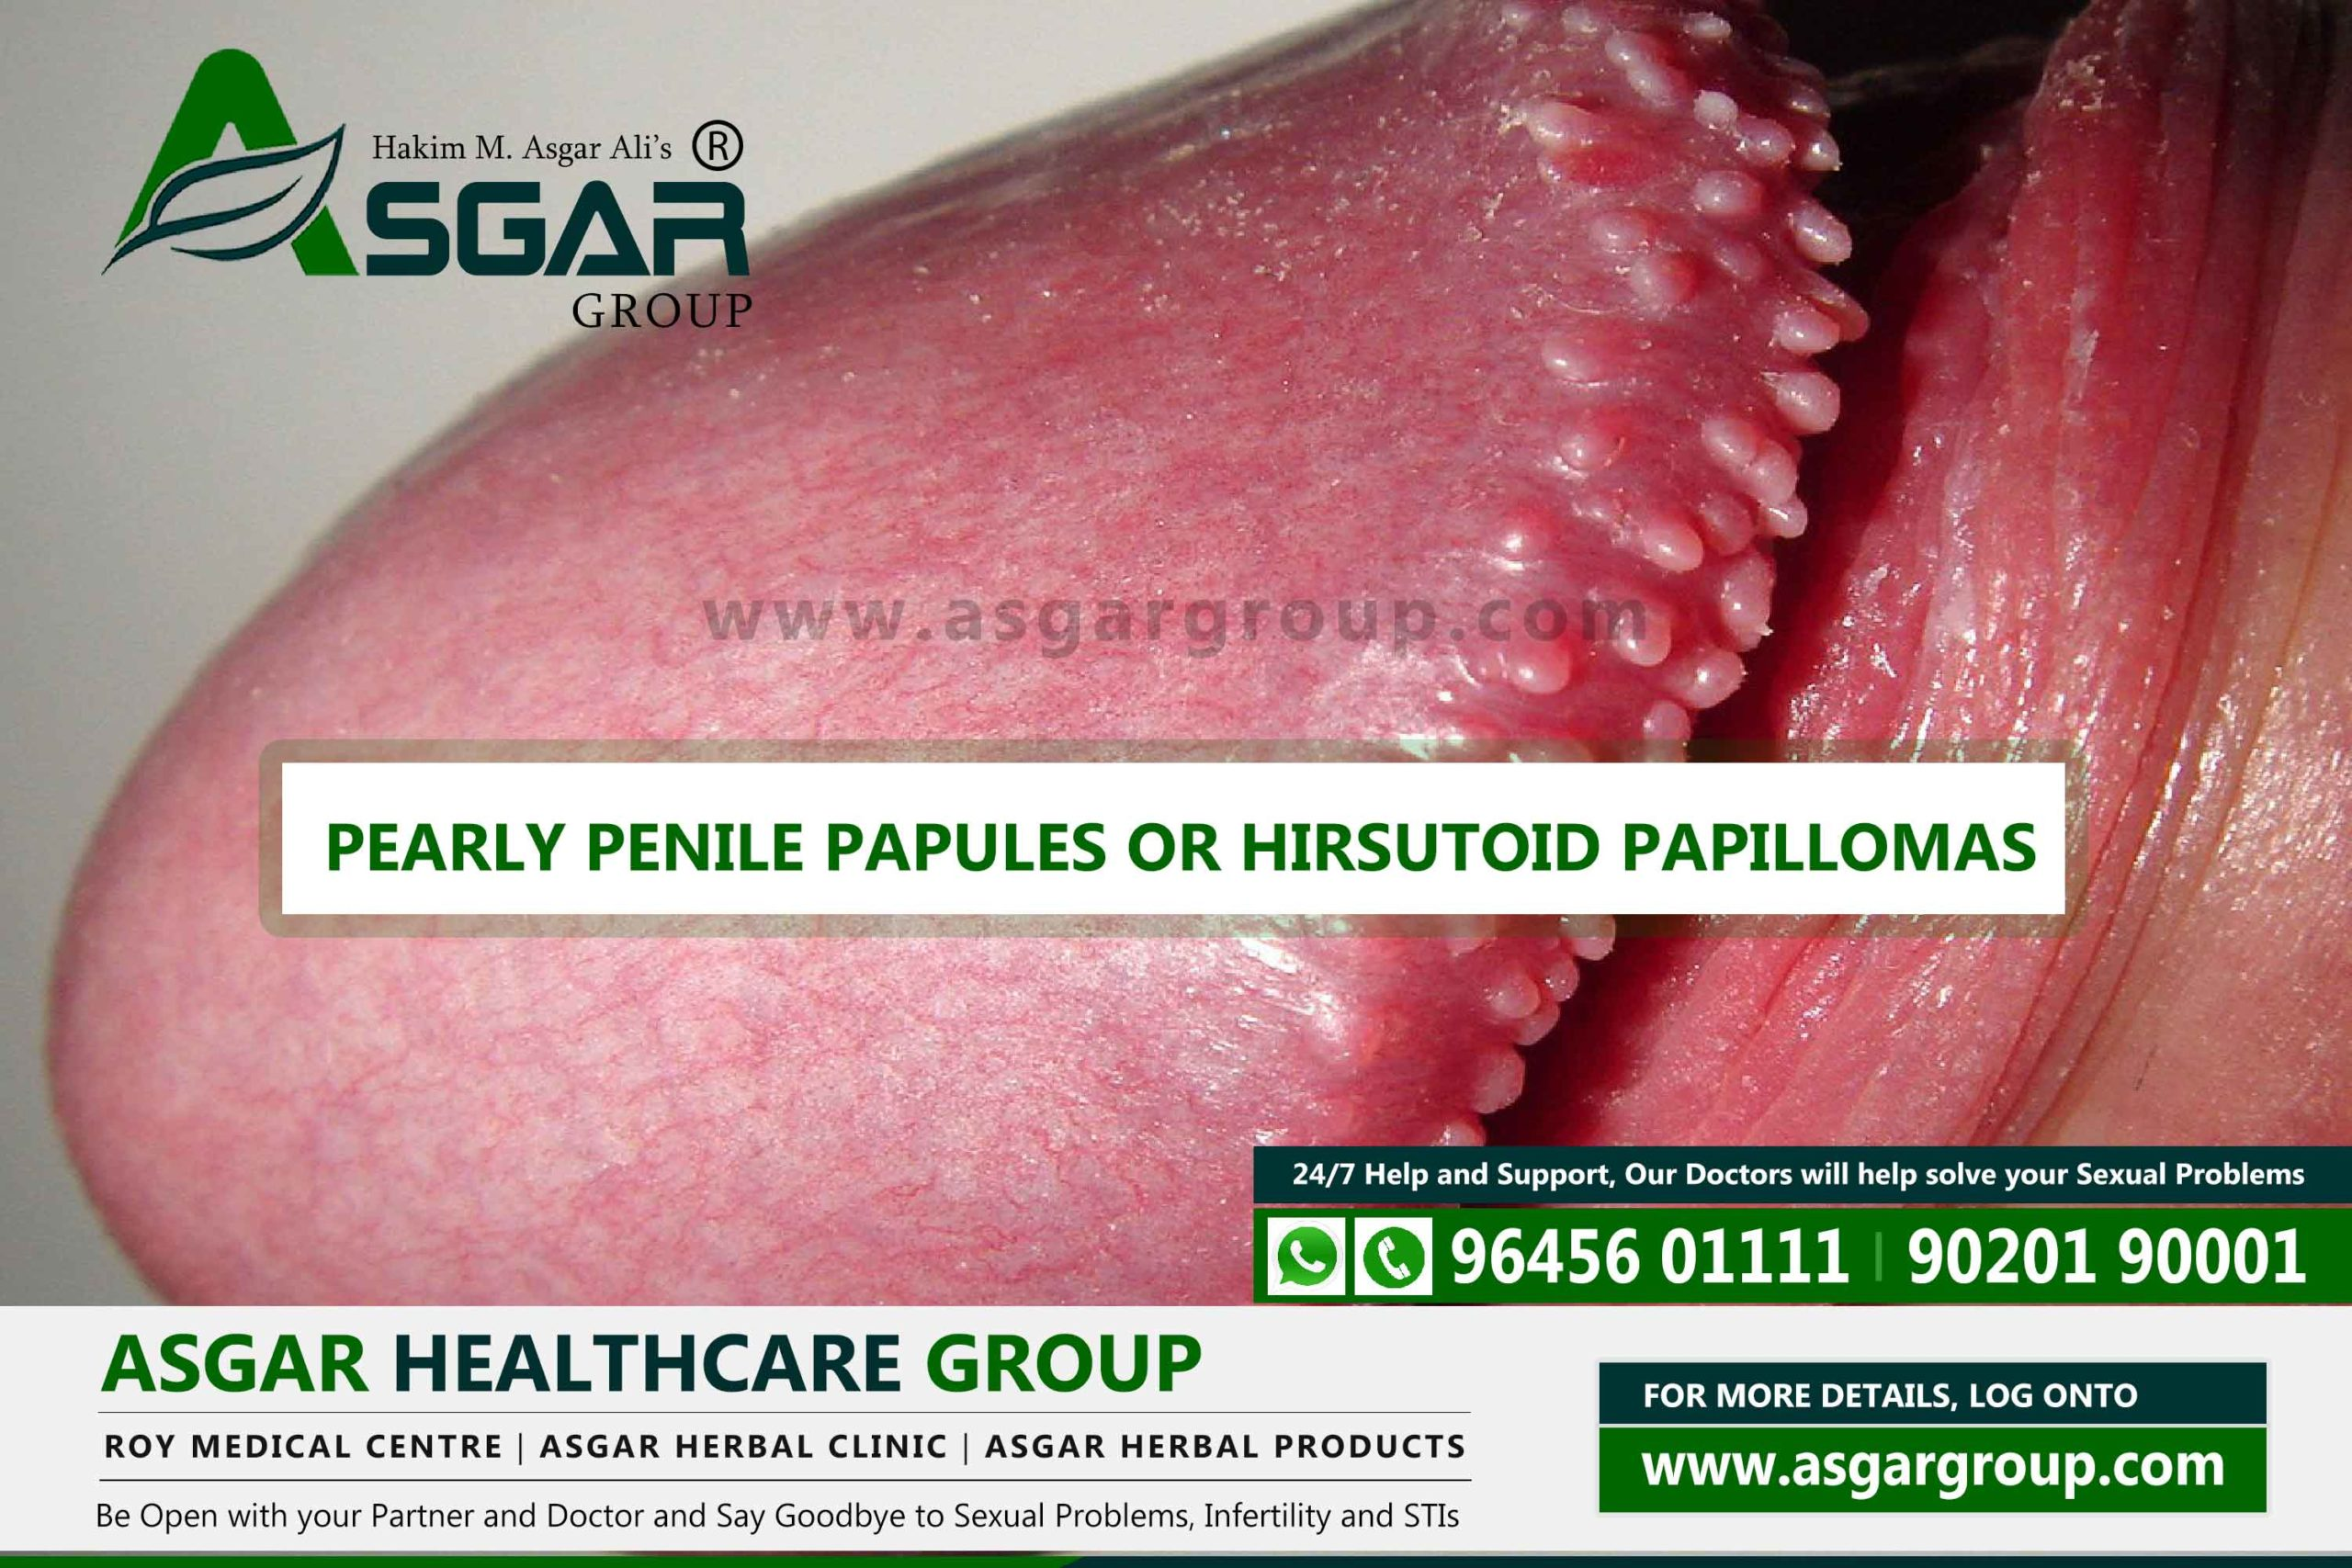 What are penile papules